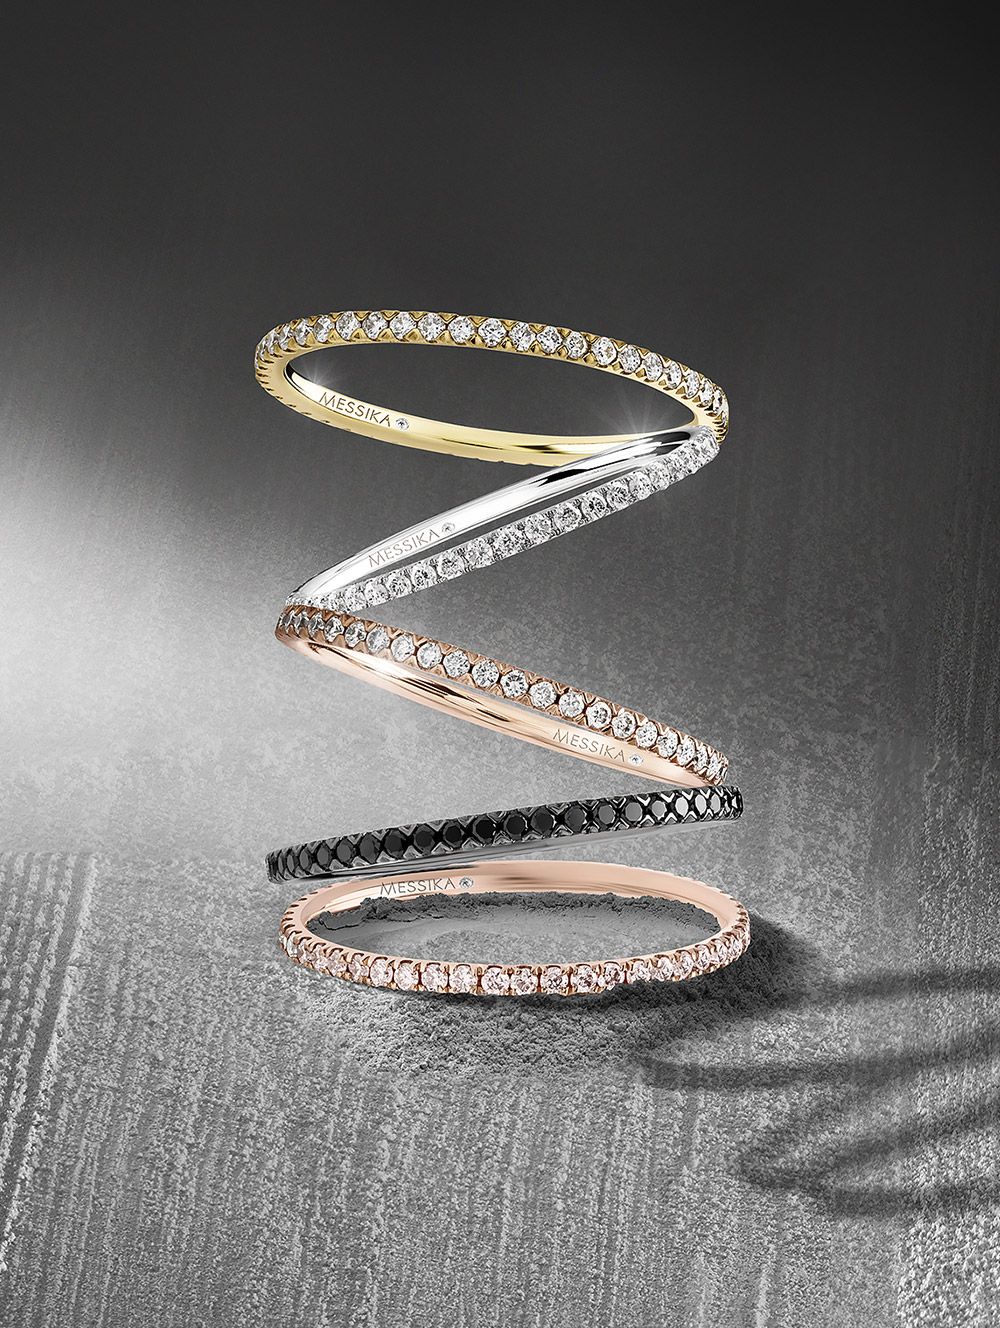 messika-bridal-women-wedding-rings